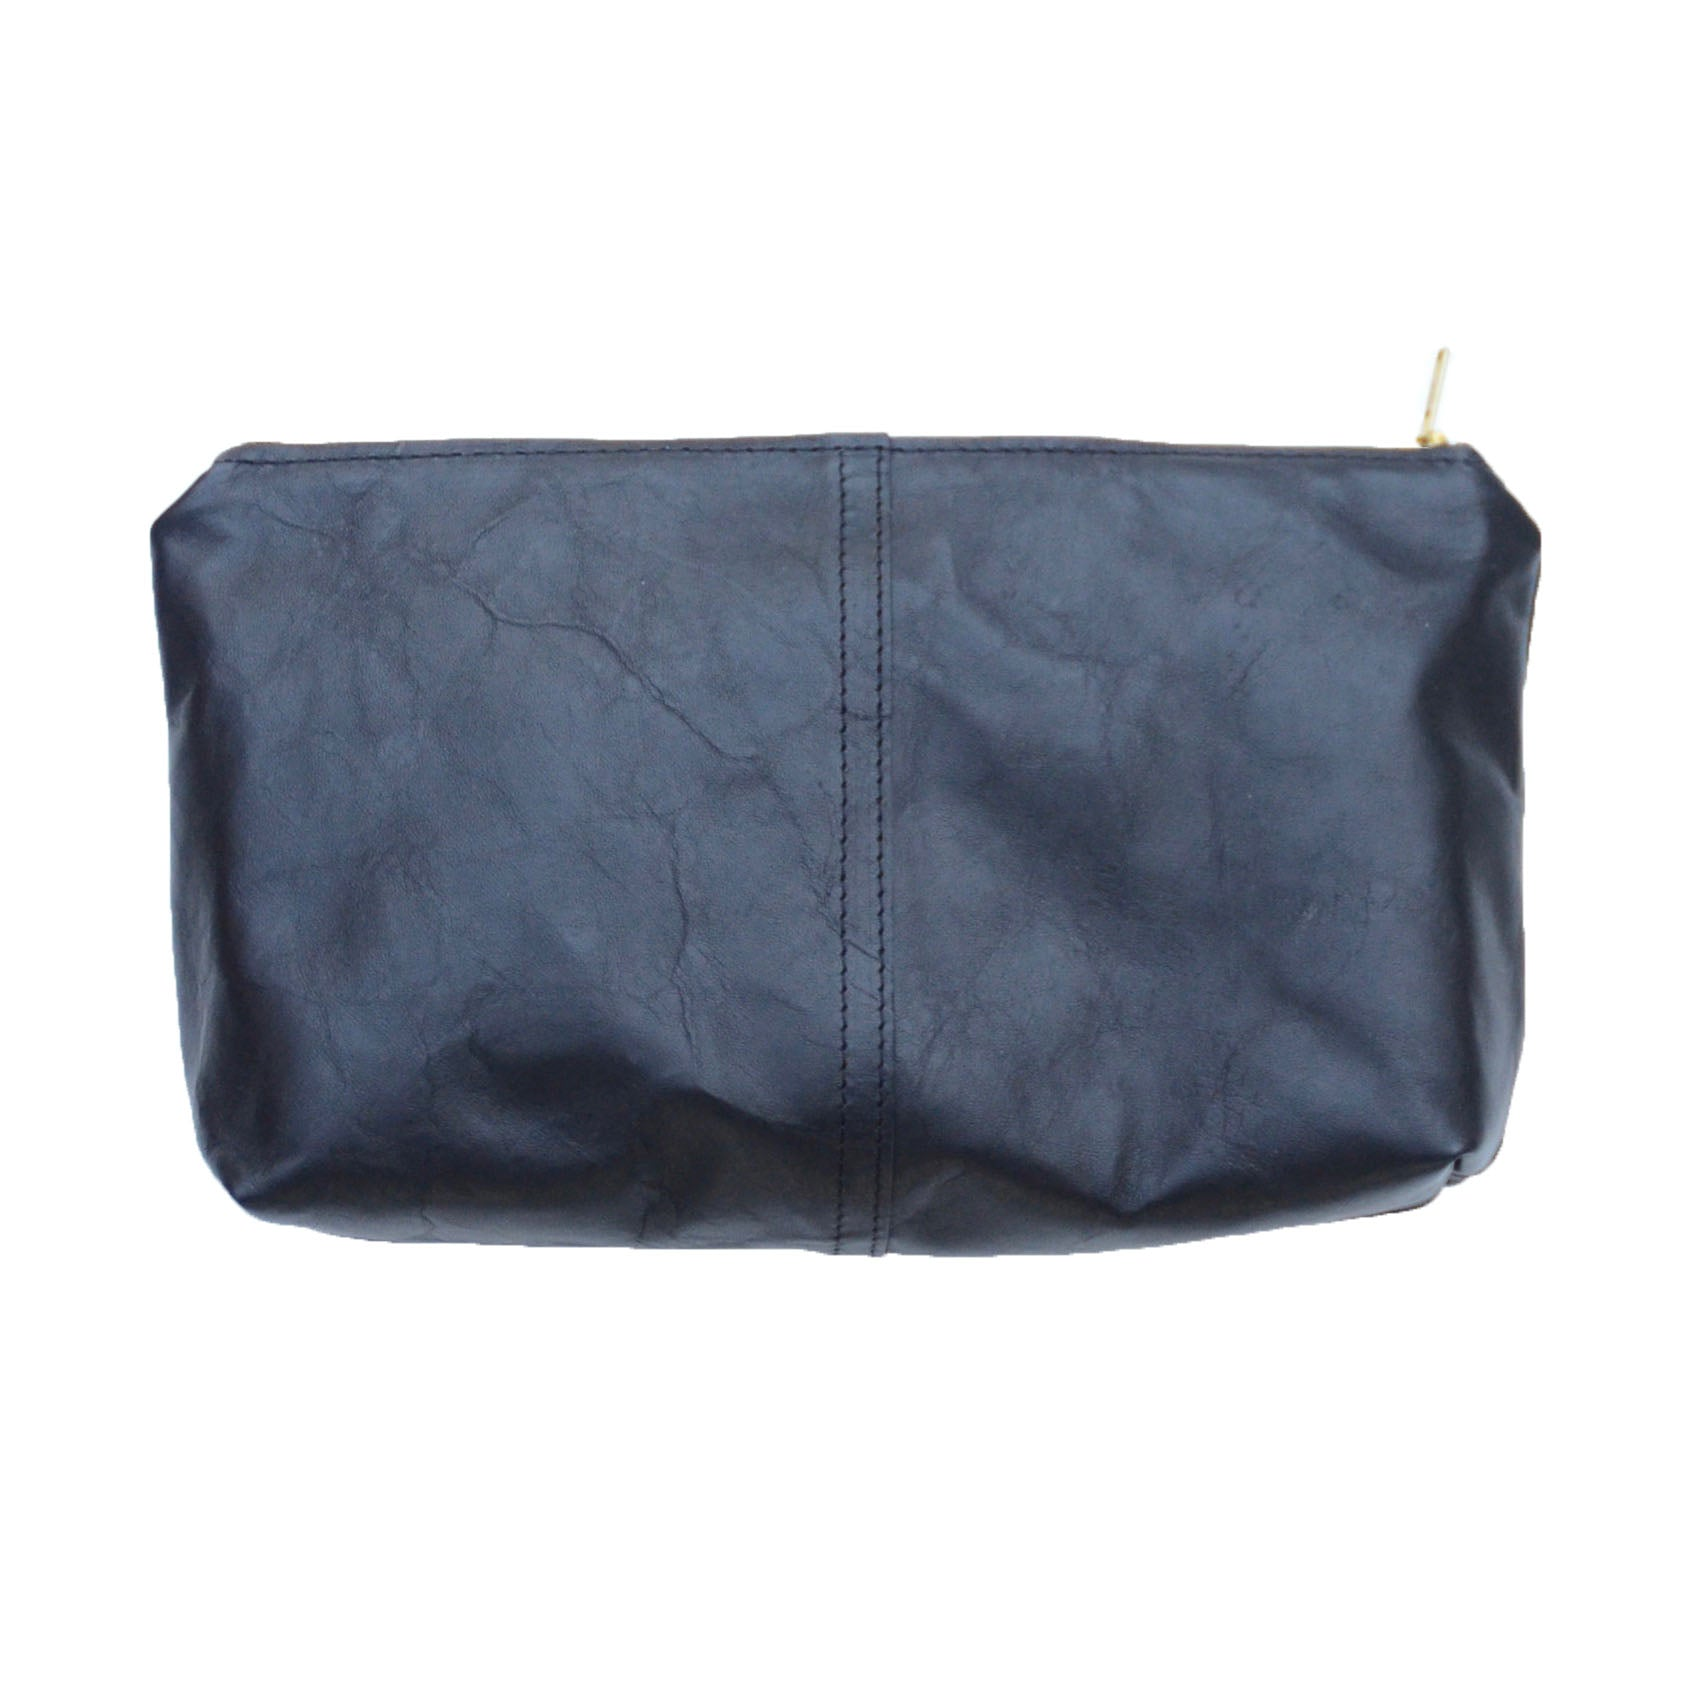 leather touring pouch: black